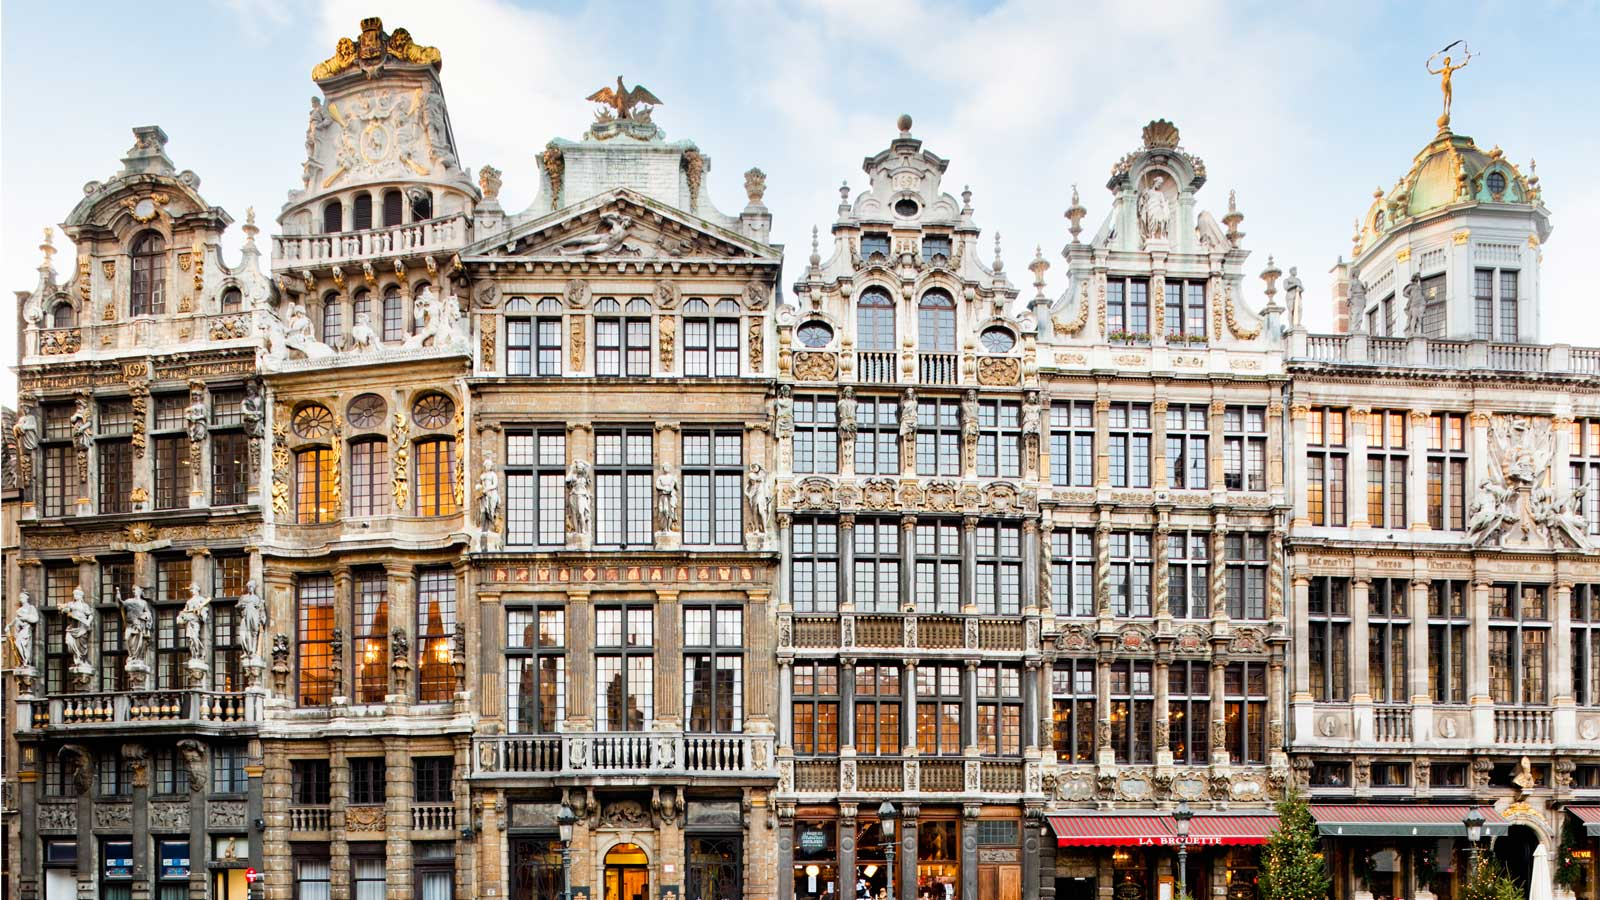 Gilded Palaces, Belgian Waffles, and Crude Statues: The 4-Day Weekend in Brussels